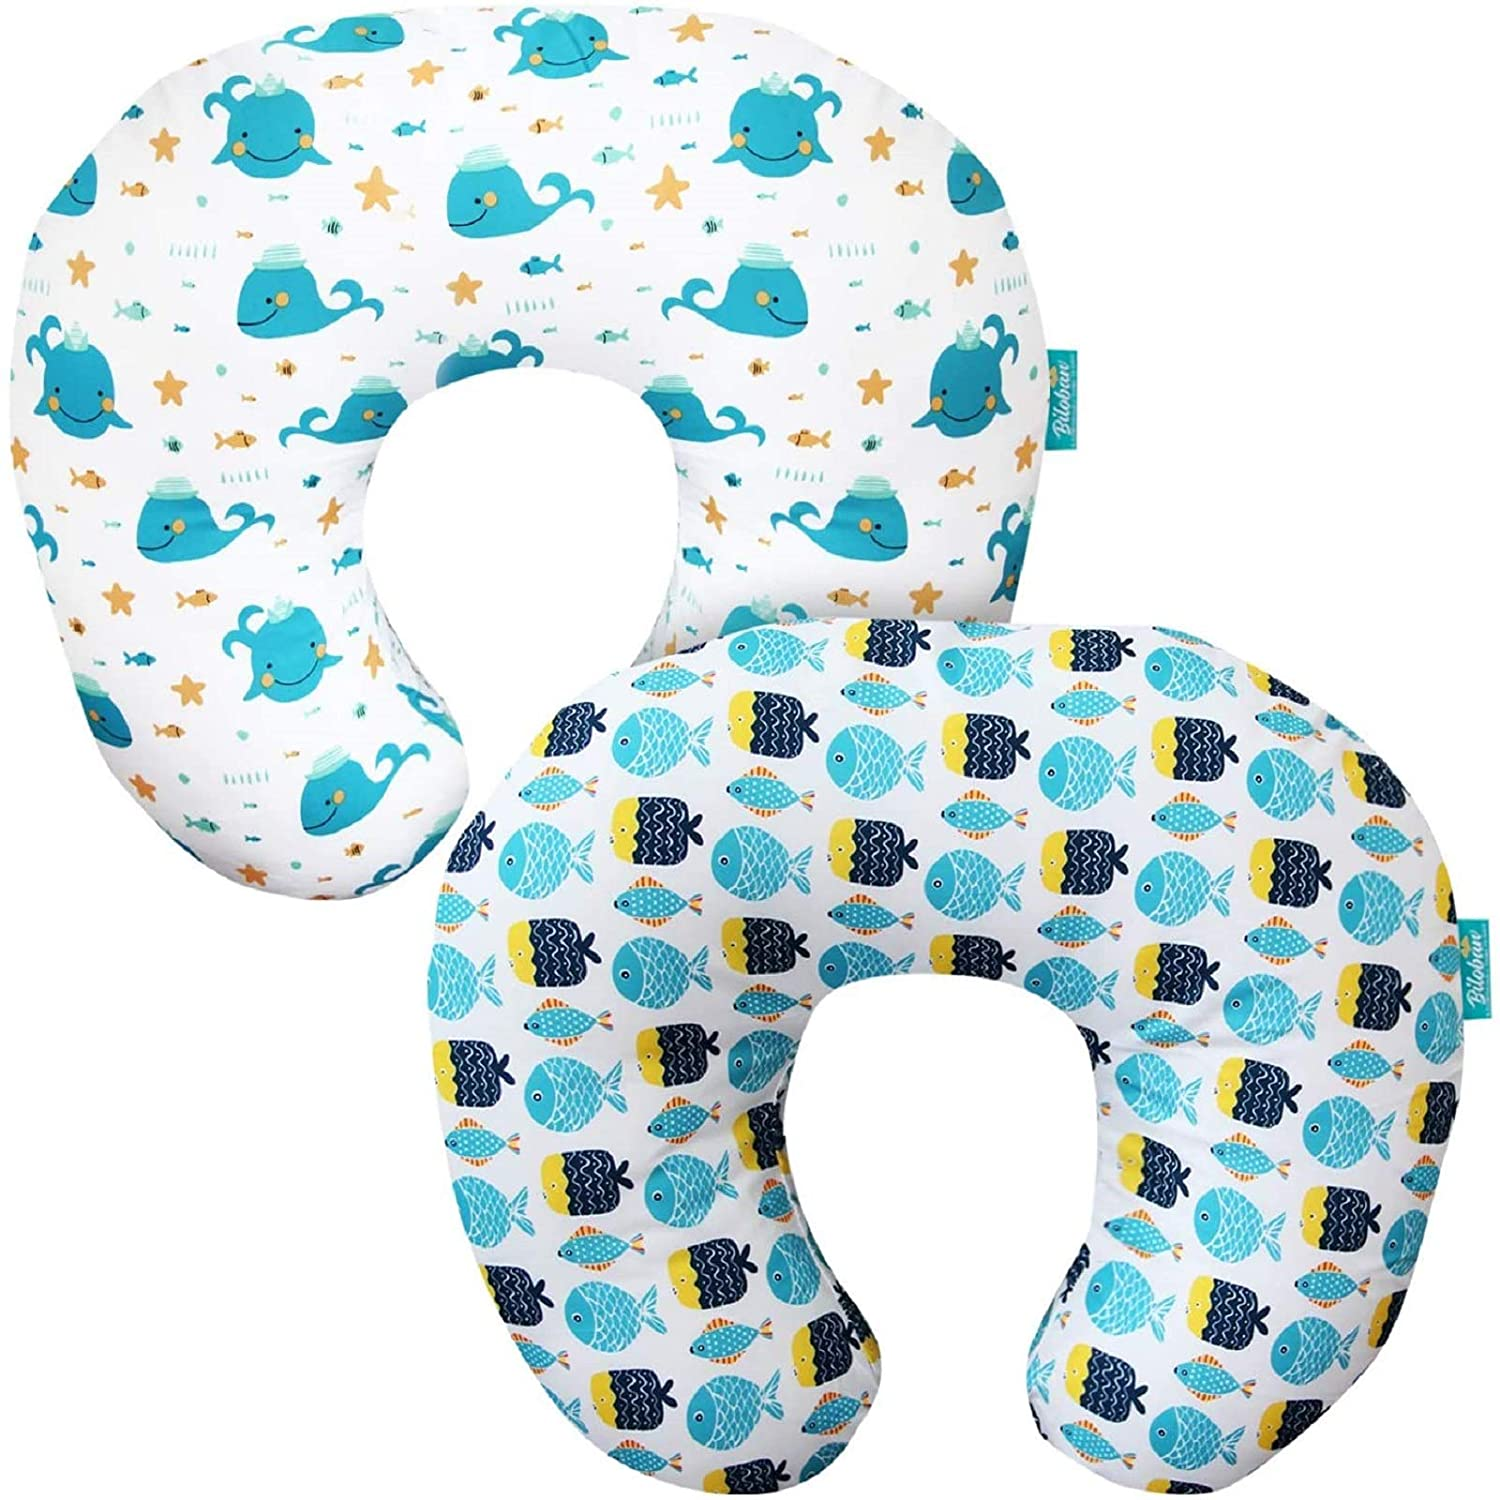 Baby Nursing Pillow Cover 2 Pack, Breathable Machine Washable Pillow Slipcovers for Moms Breastfeeding and Bottle Feeding Pillow, Large Zipper Ultra Soft Infant Support Pillow Cover for Boys Girls